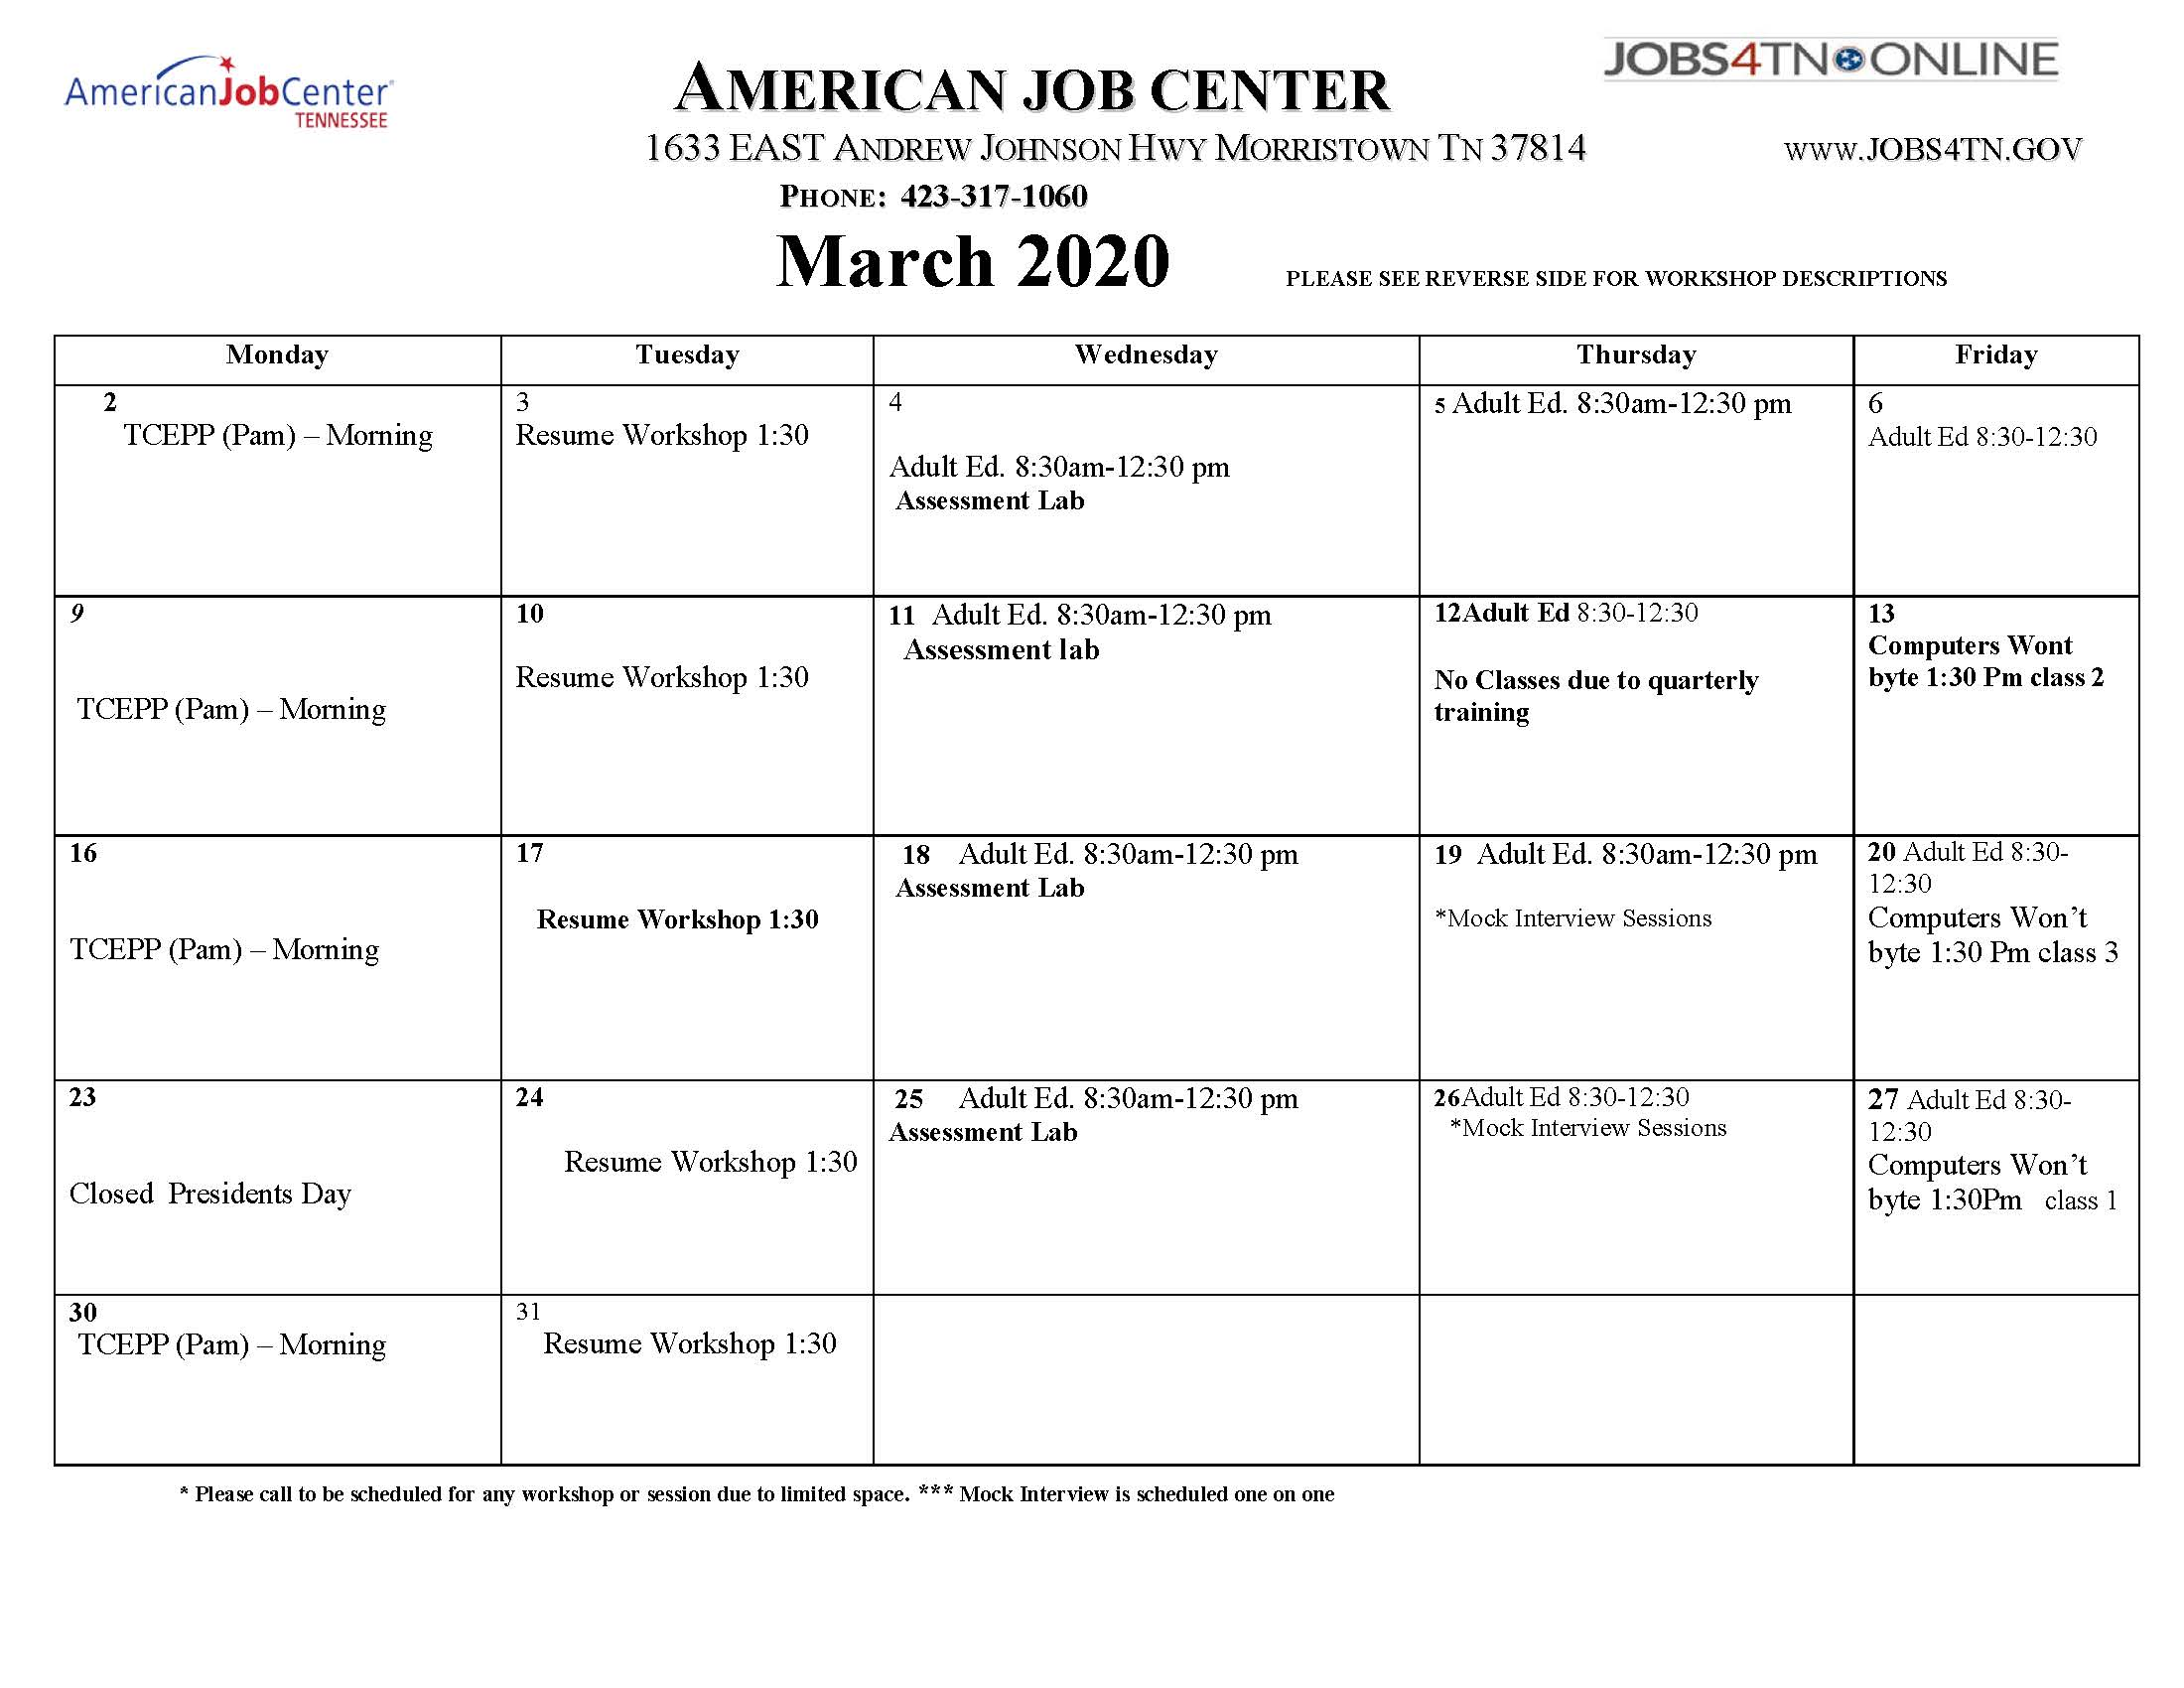 Morristown AJC Workshops/Events